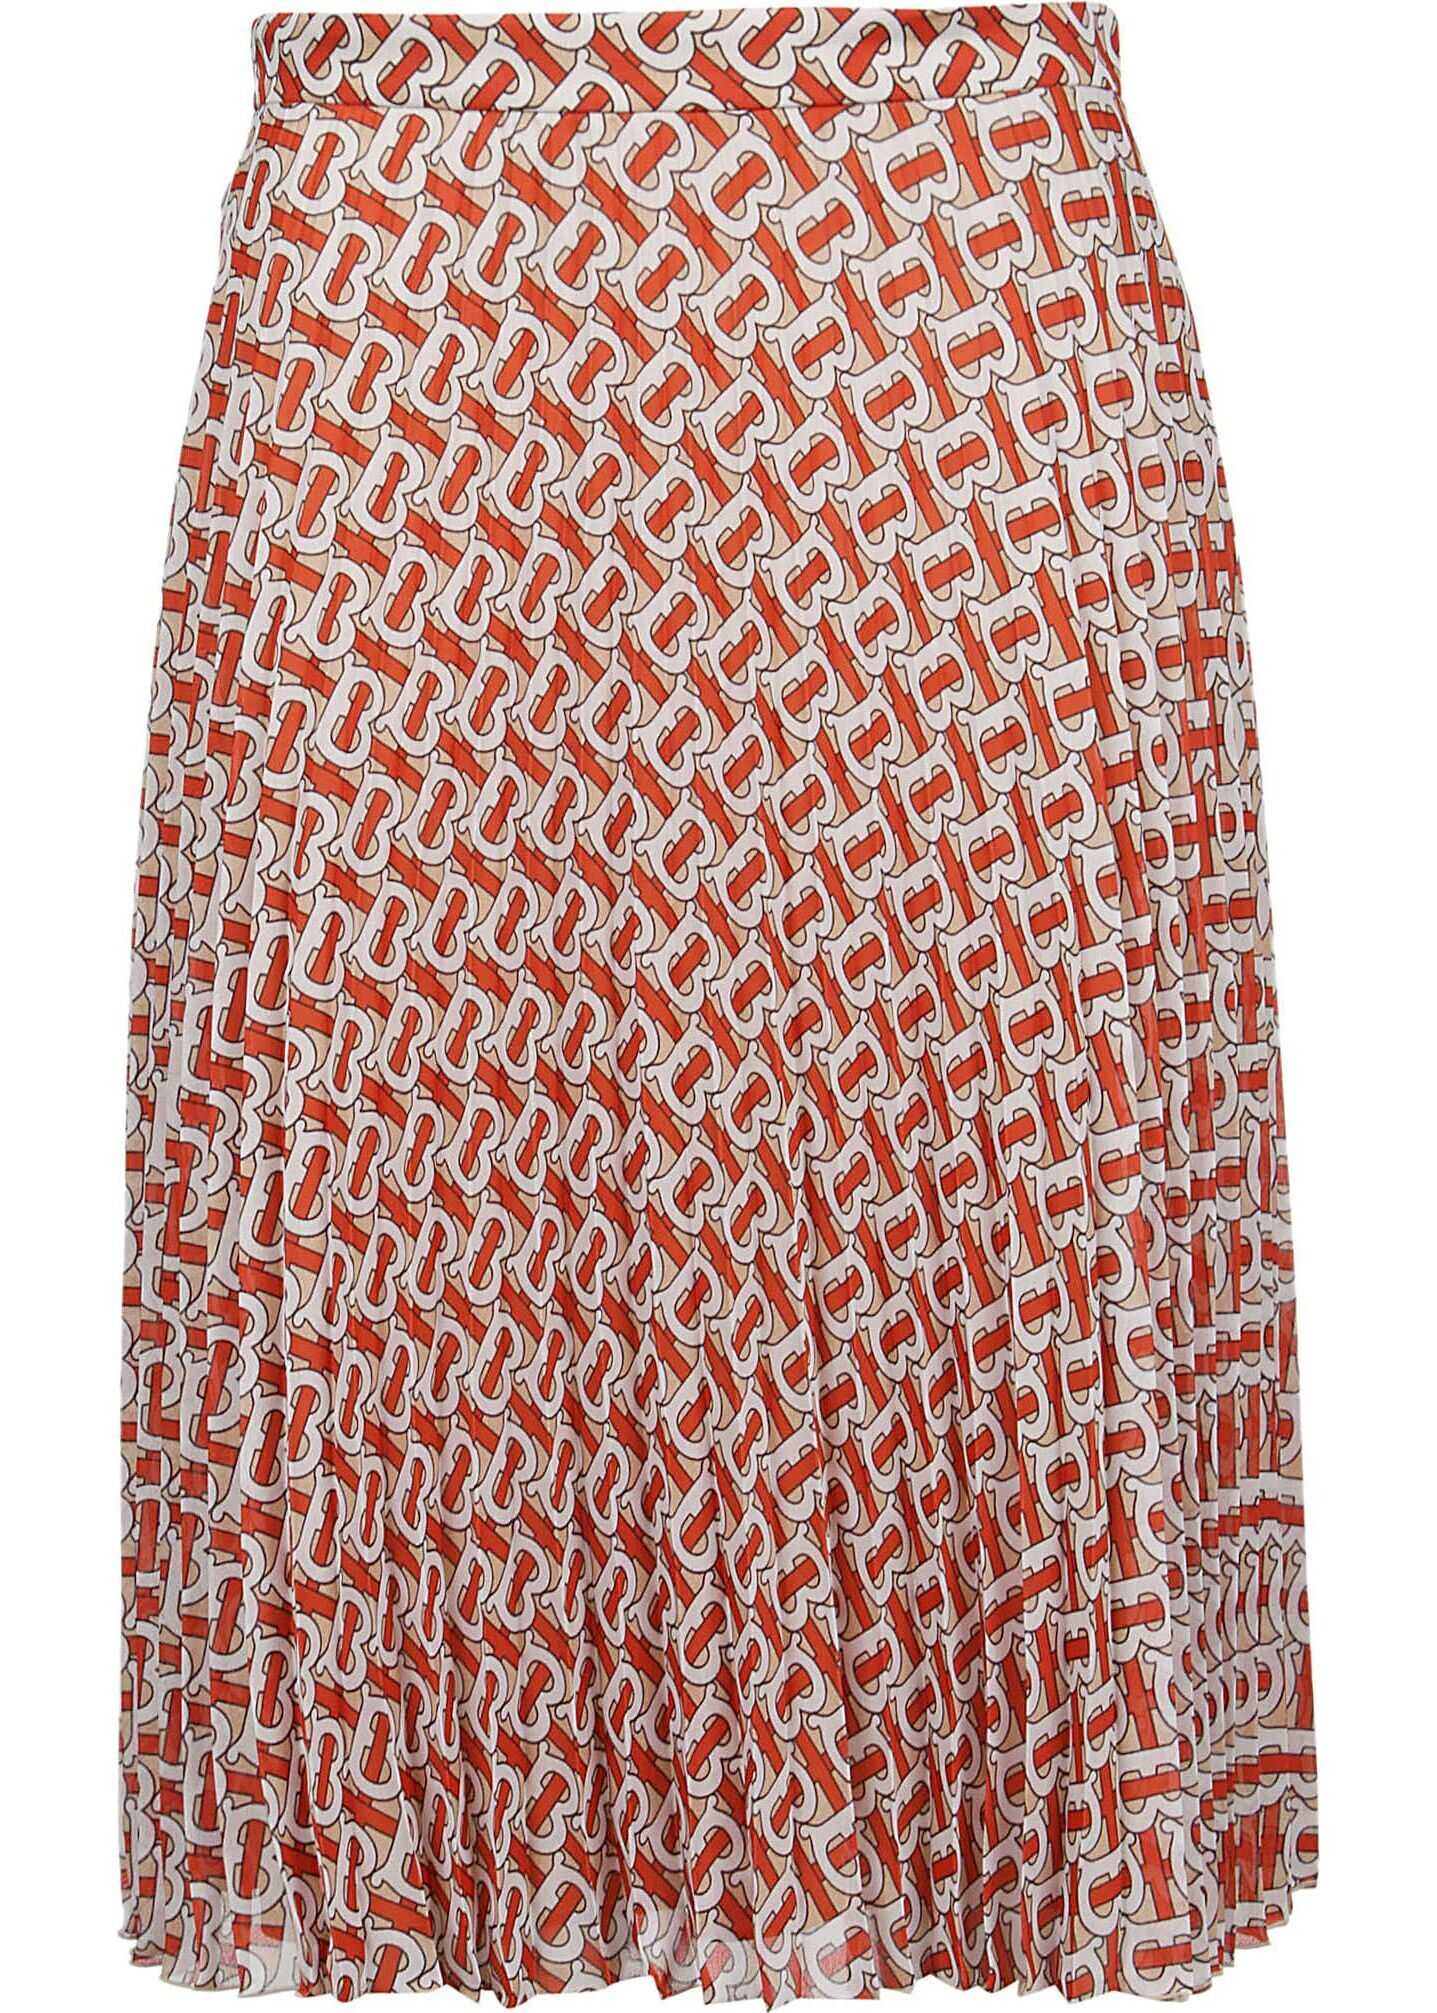 Burberry Polyester Skirt RED